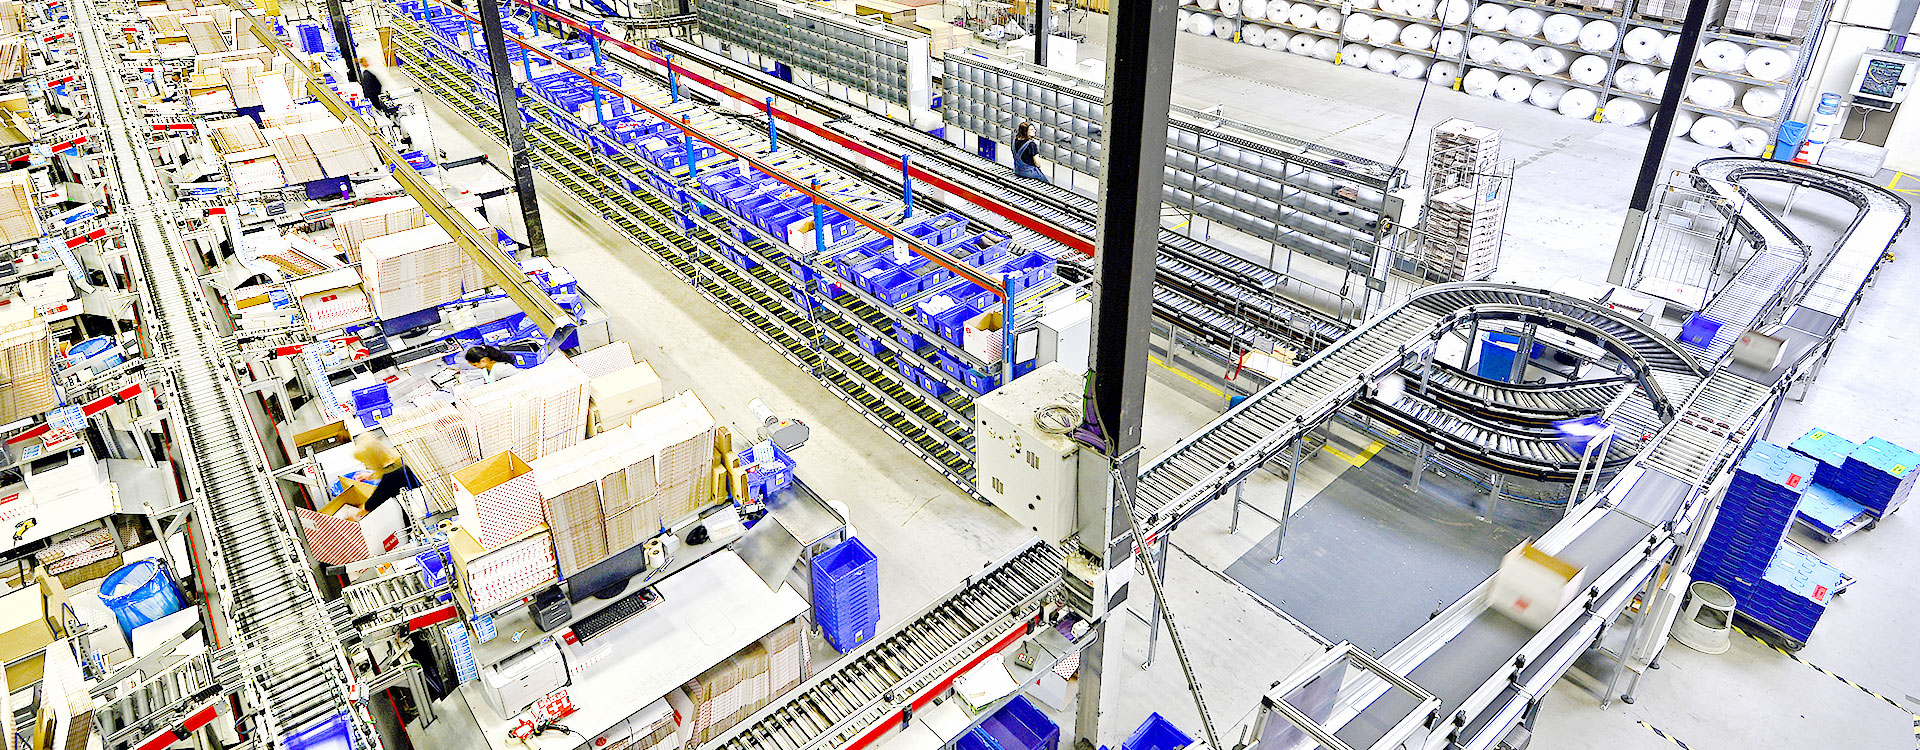 HEMA E-commerce distributon center - Inther Group